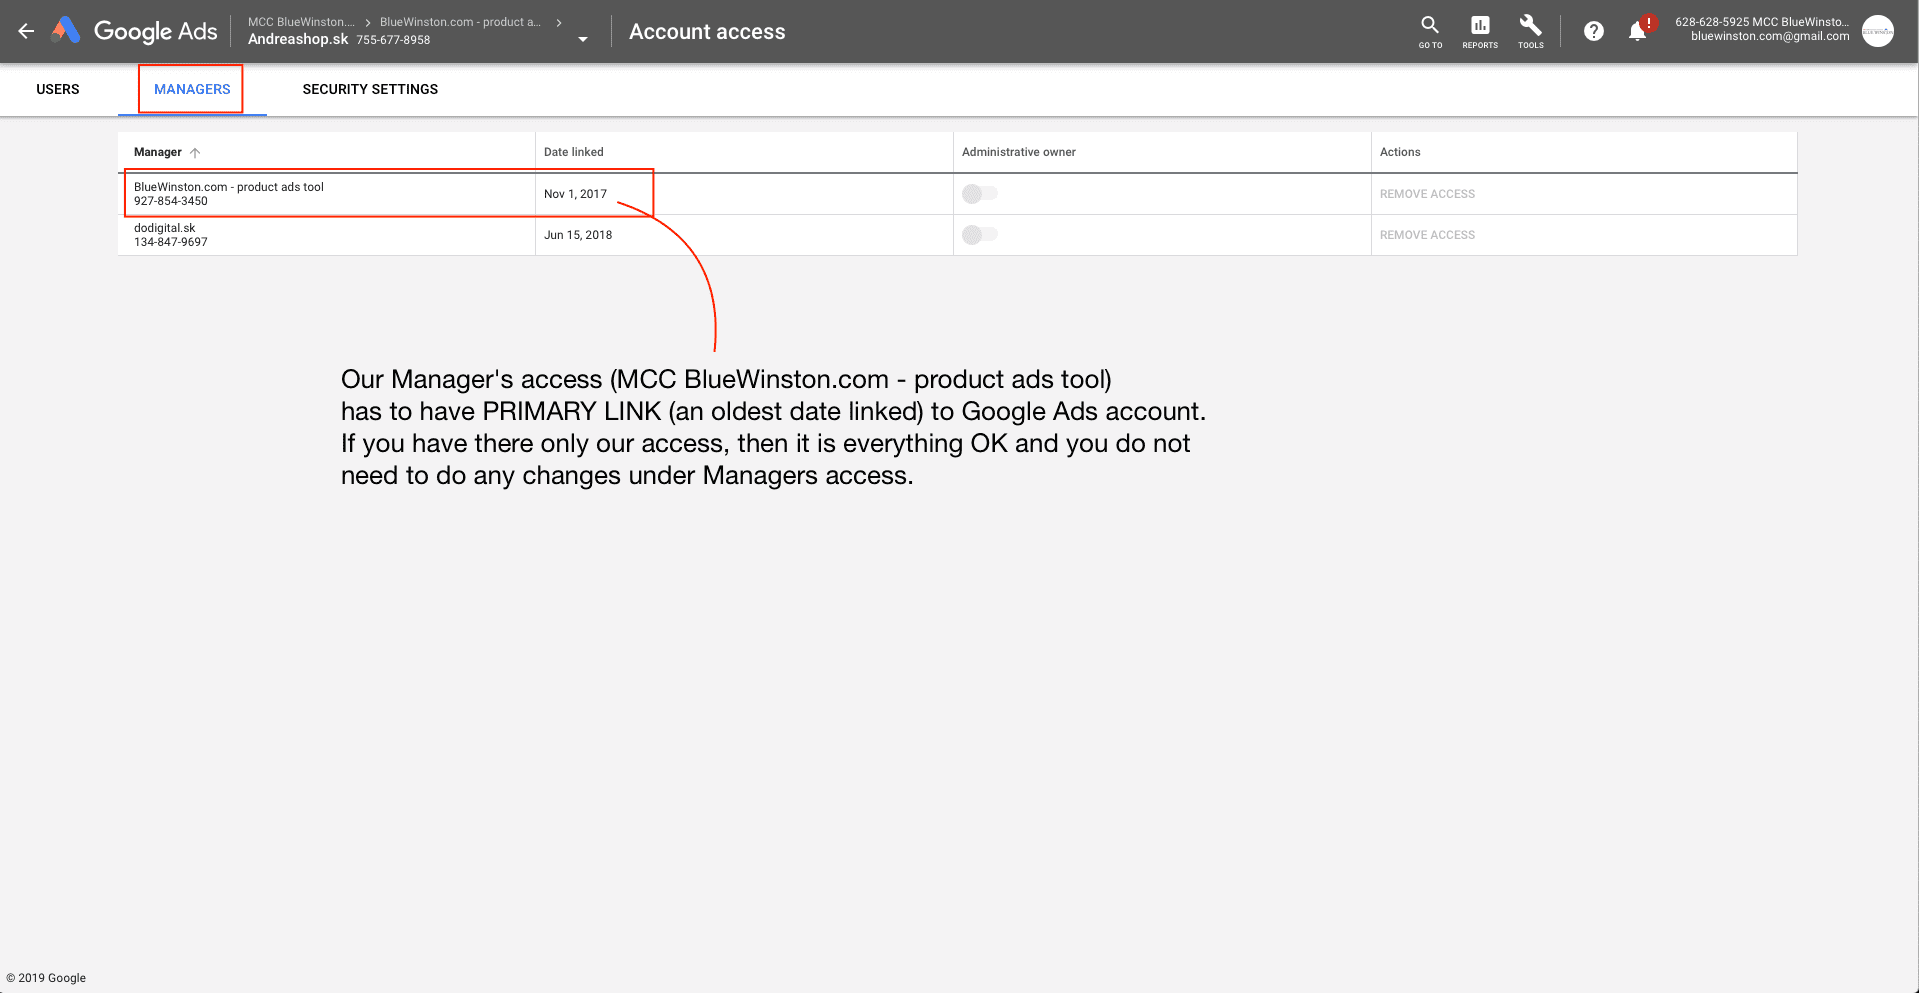 Managers account access in Google Ads